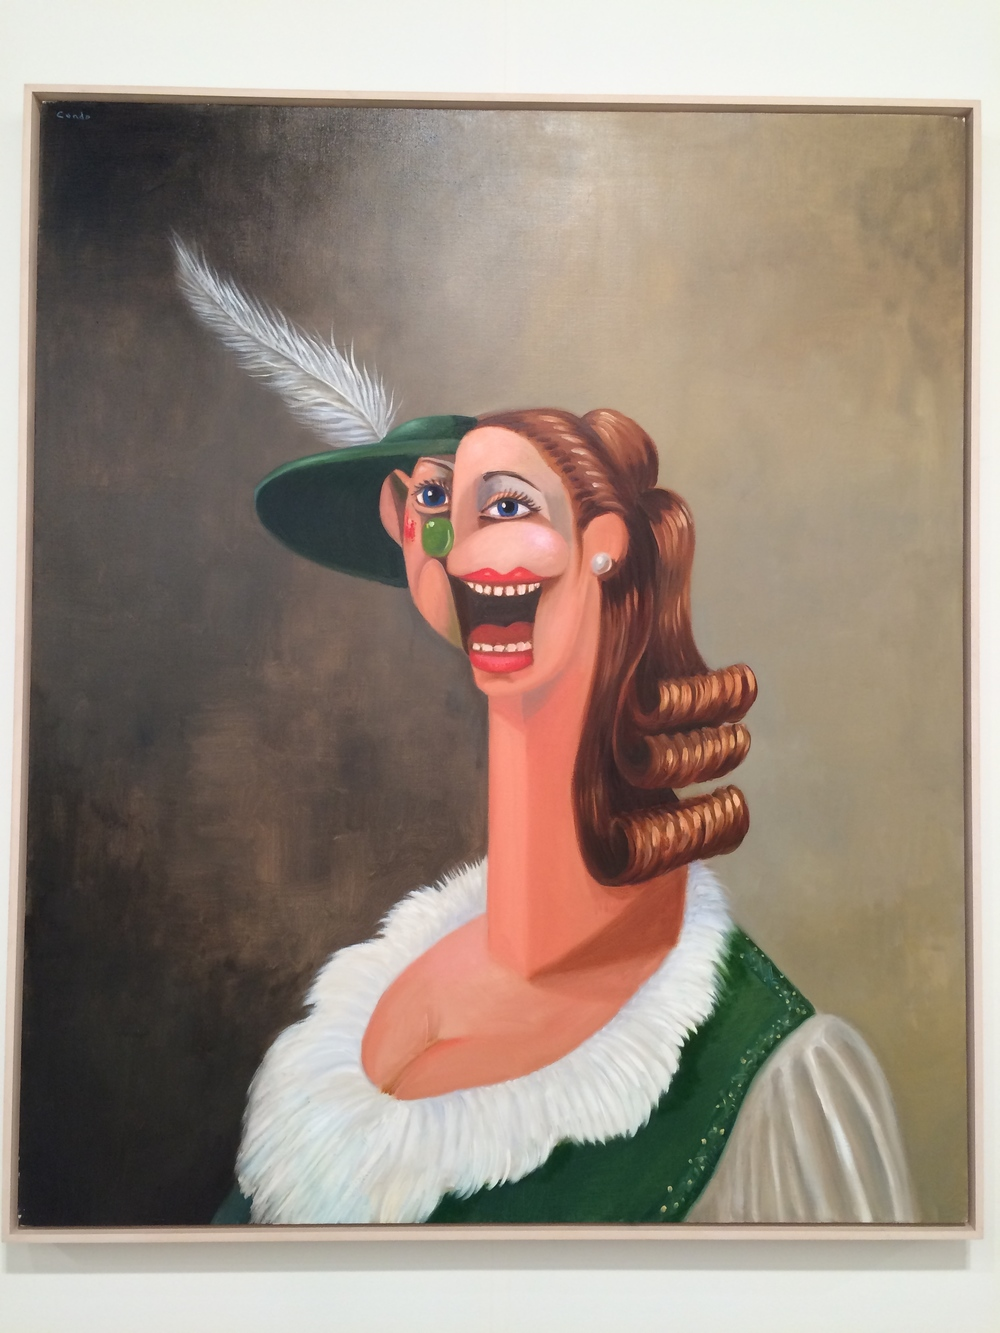 George Condo at John Berggruen Gallery